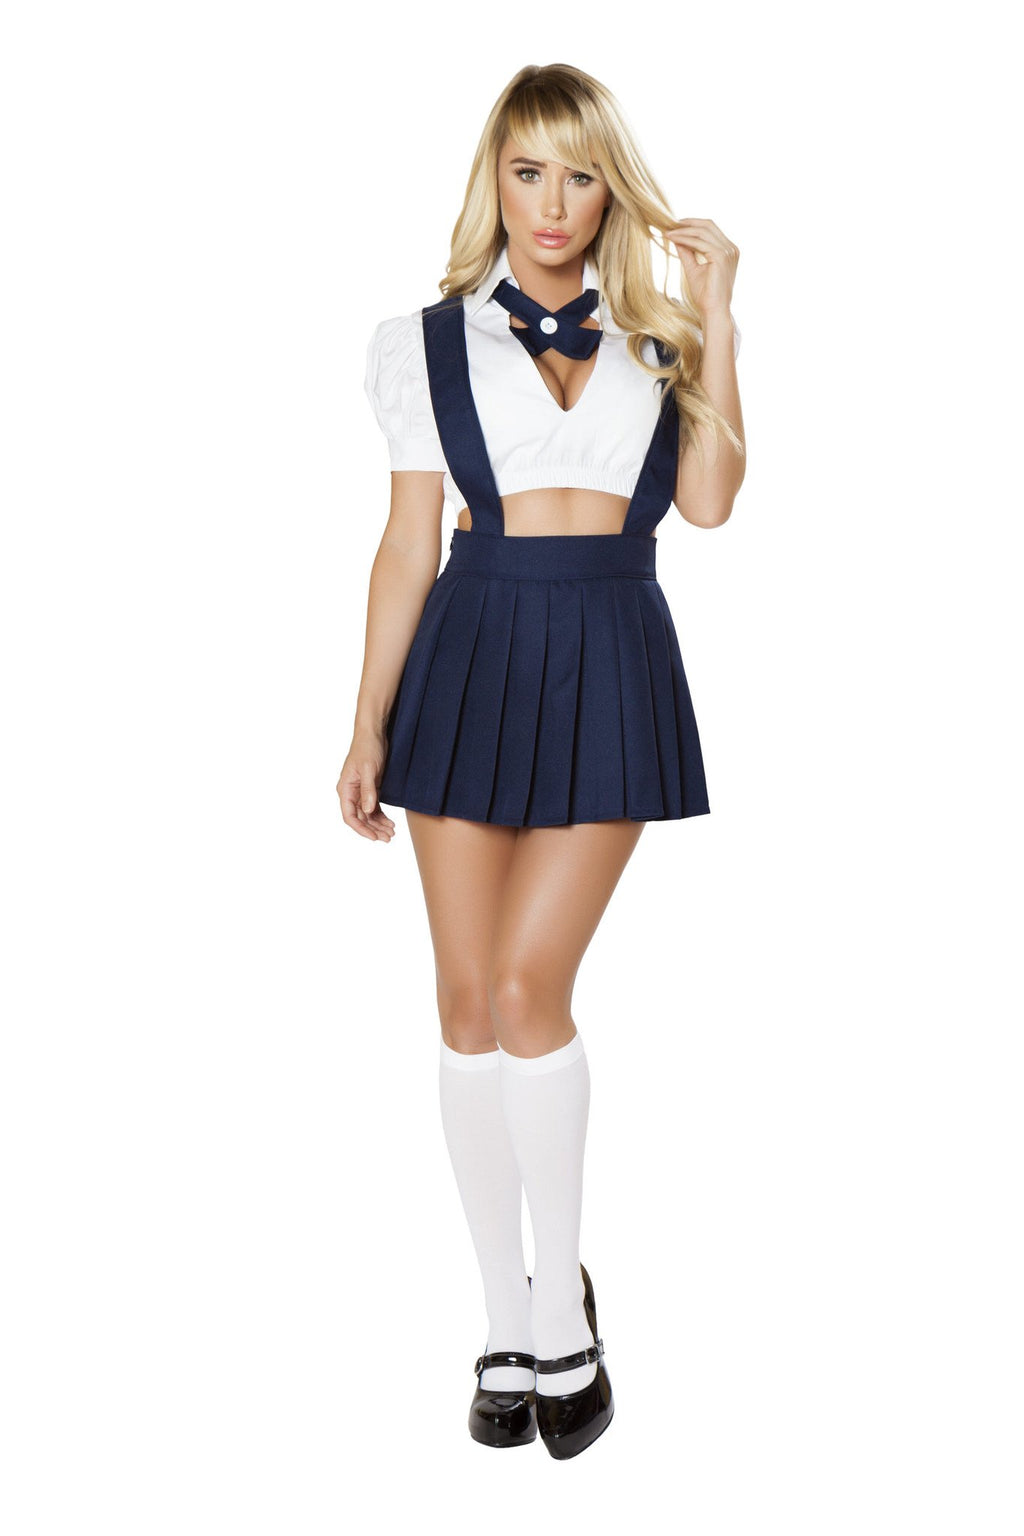 3pc Naughty Private School Hottie